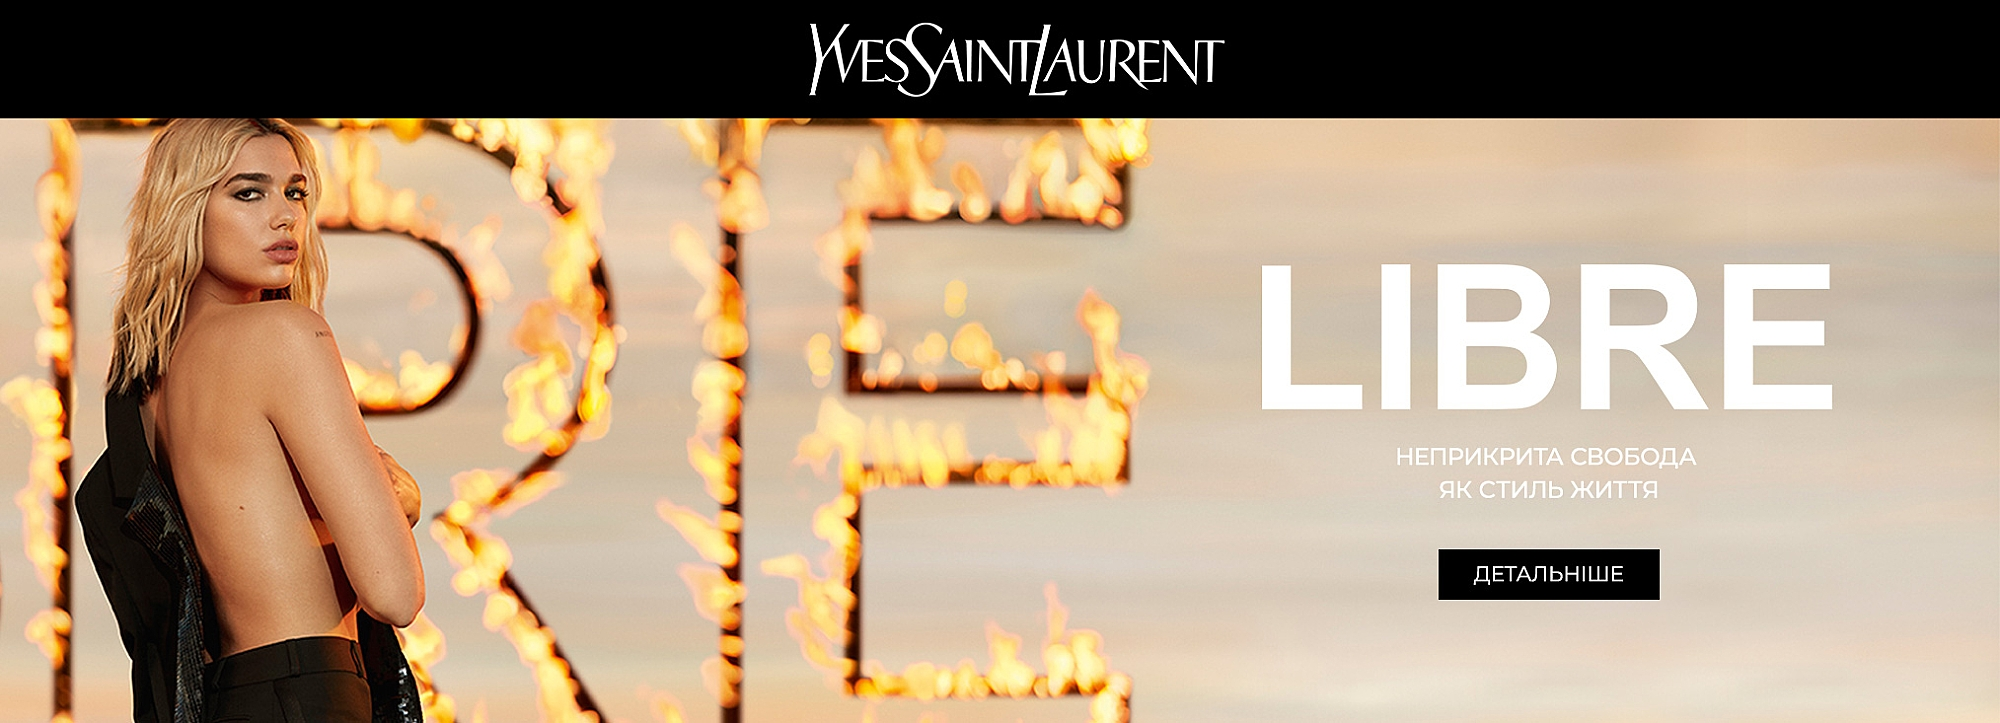 Yves Saint Laurent Brand Page